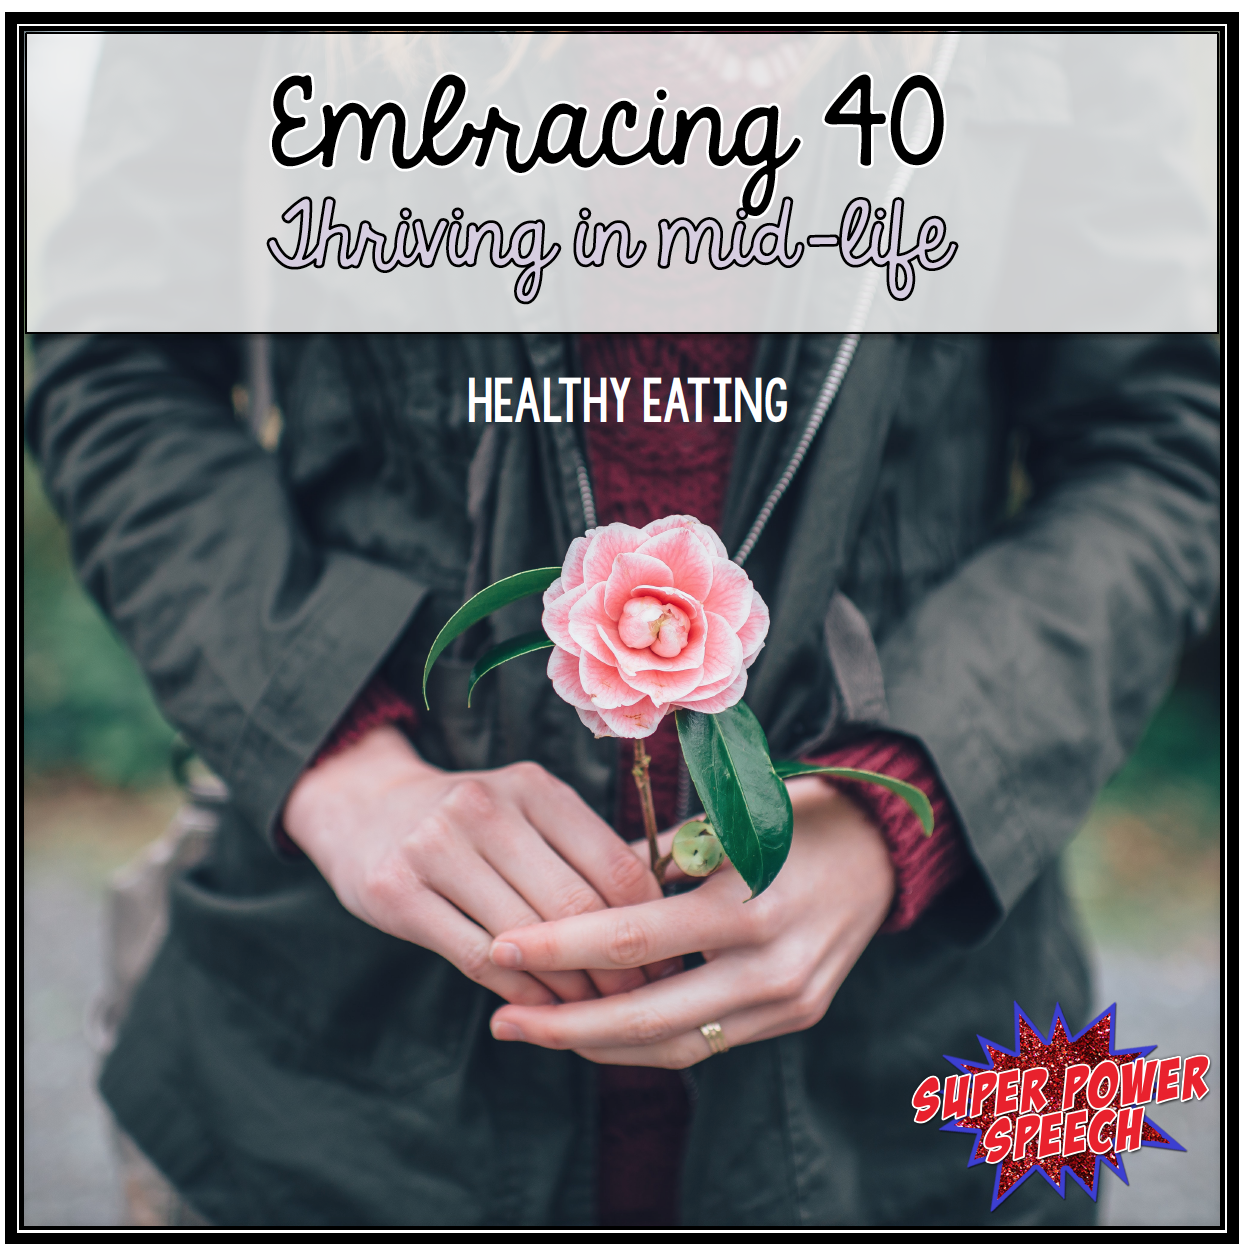 Embracing 40: Healthy Eating